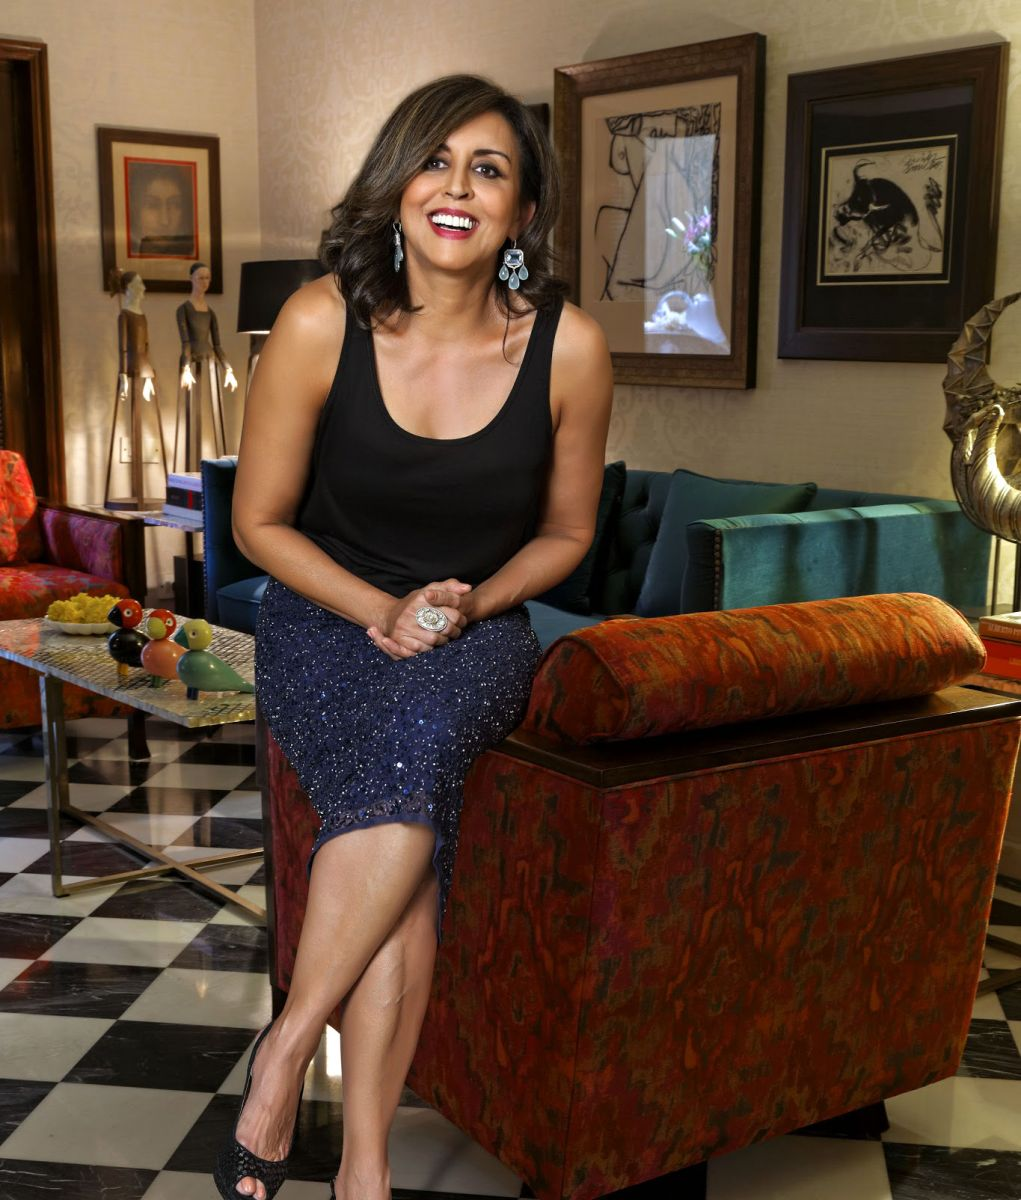 Vinita cuts a stylish and vibrant figure in her beautifully decorated home